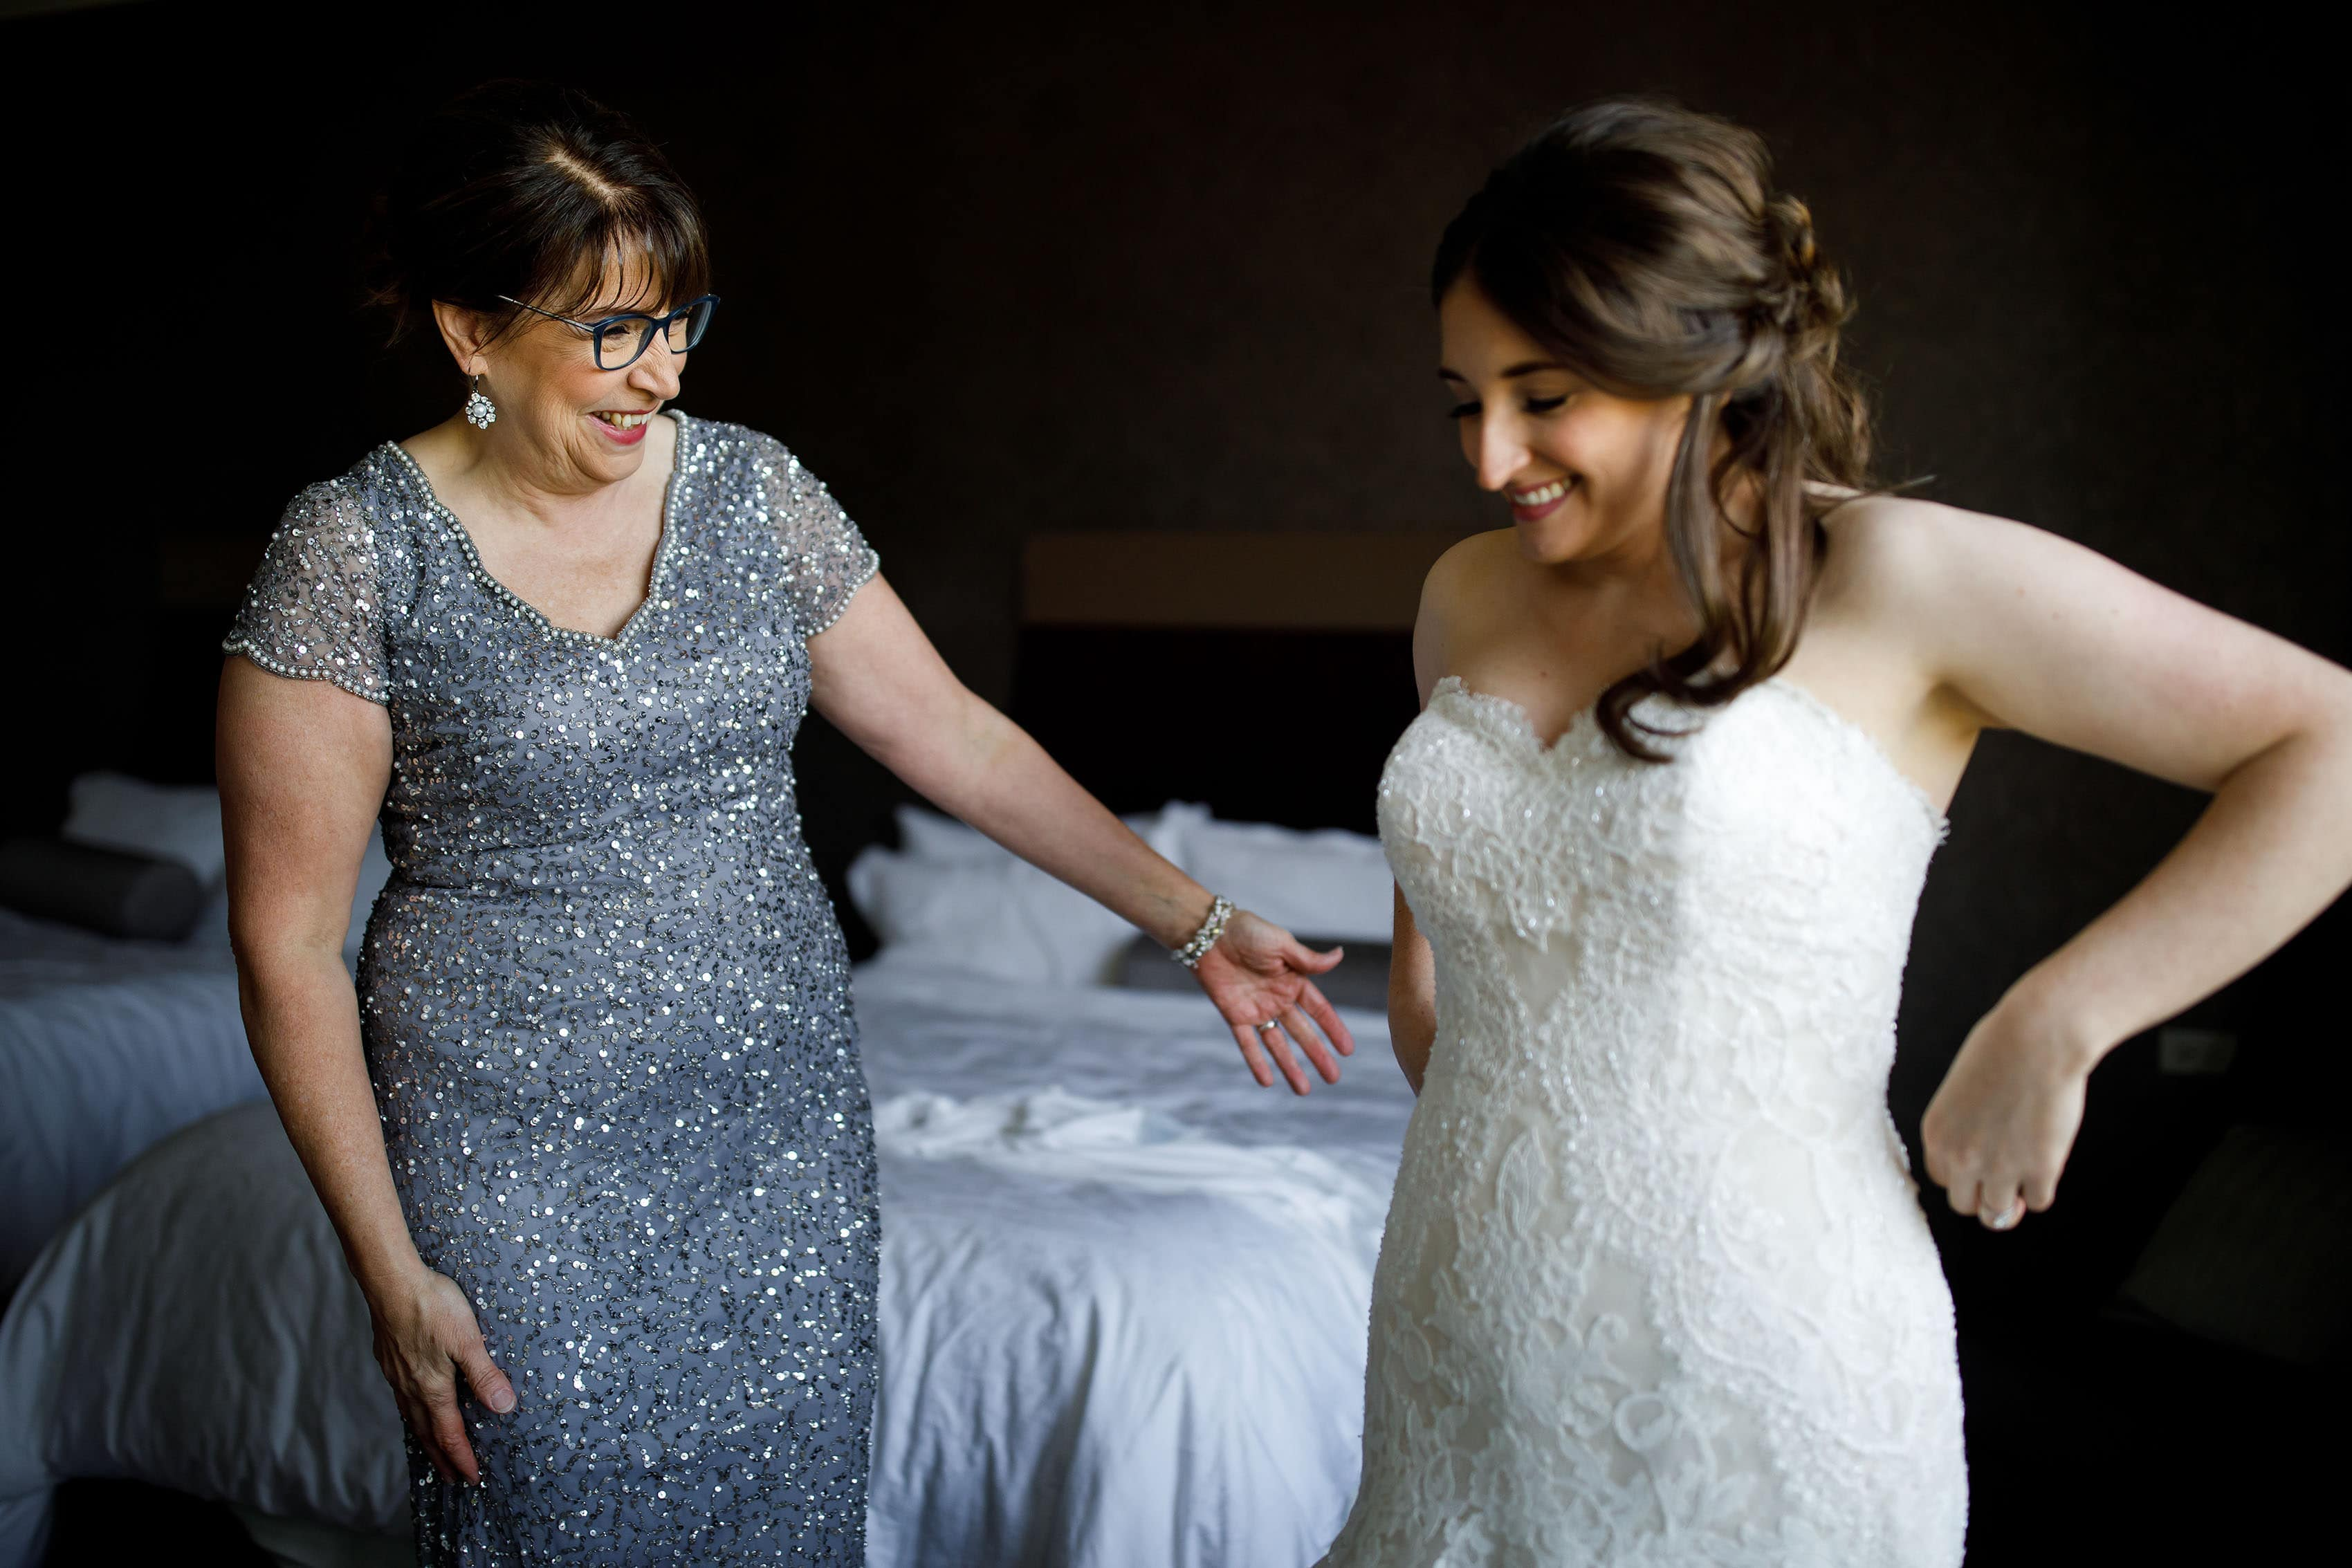 Katie and her mother share a moment after getting into her wedding gown